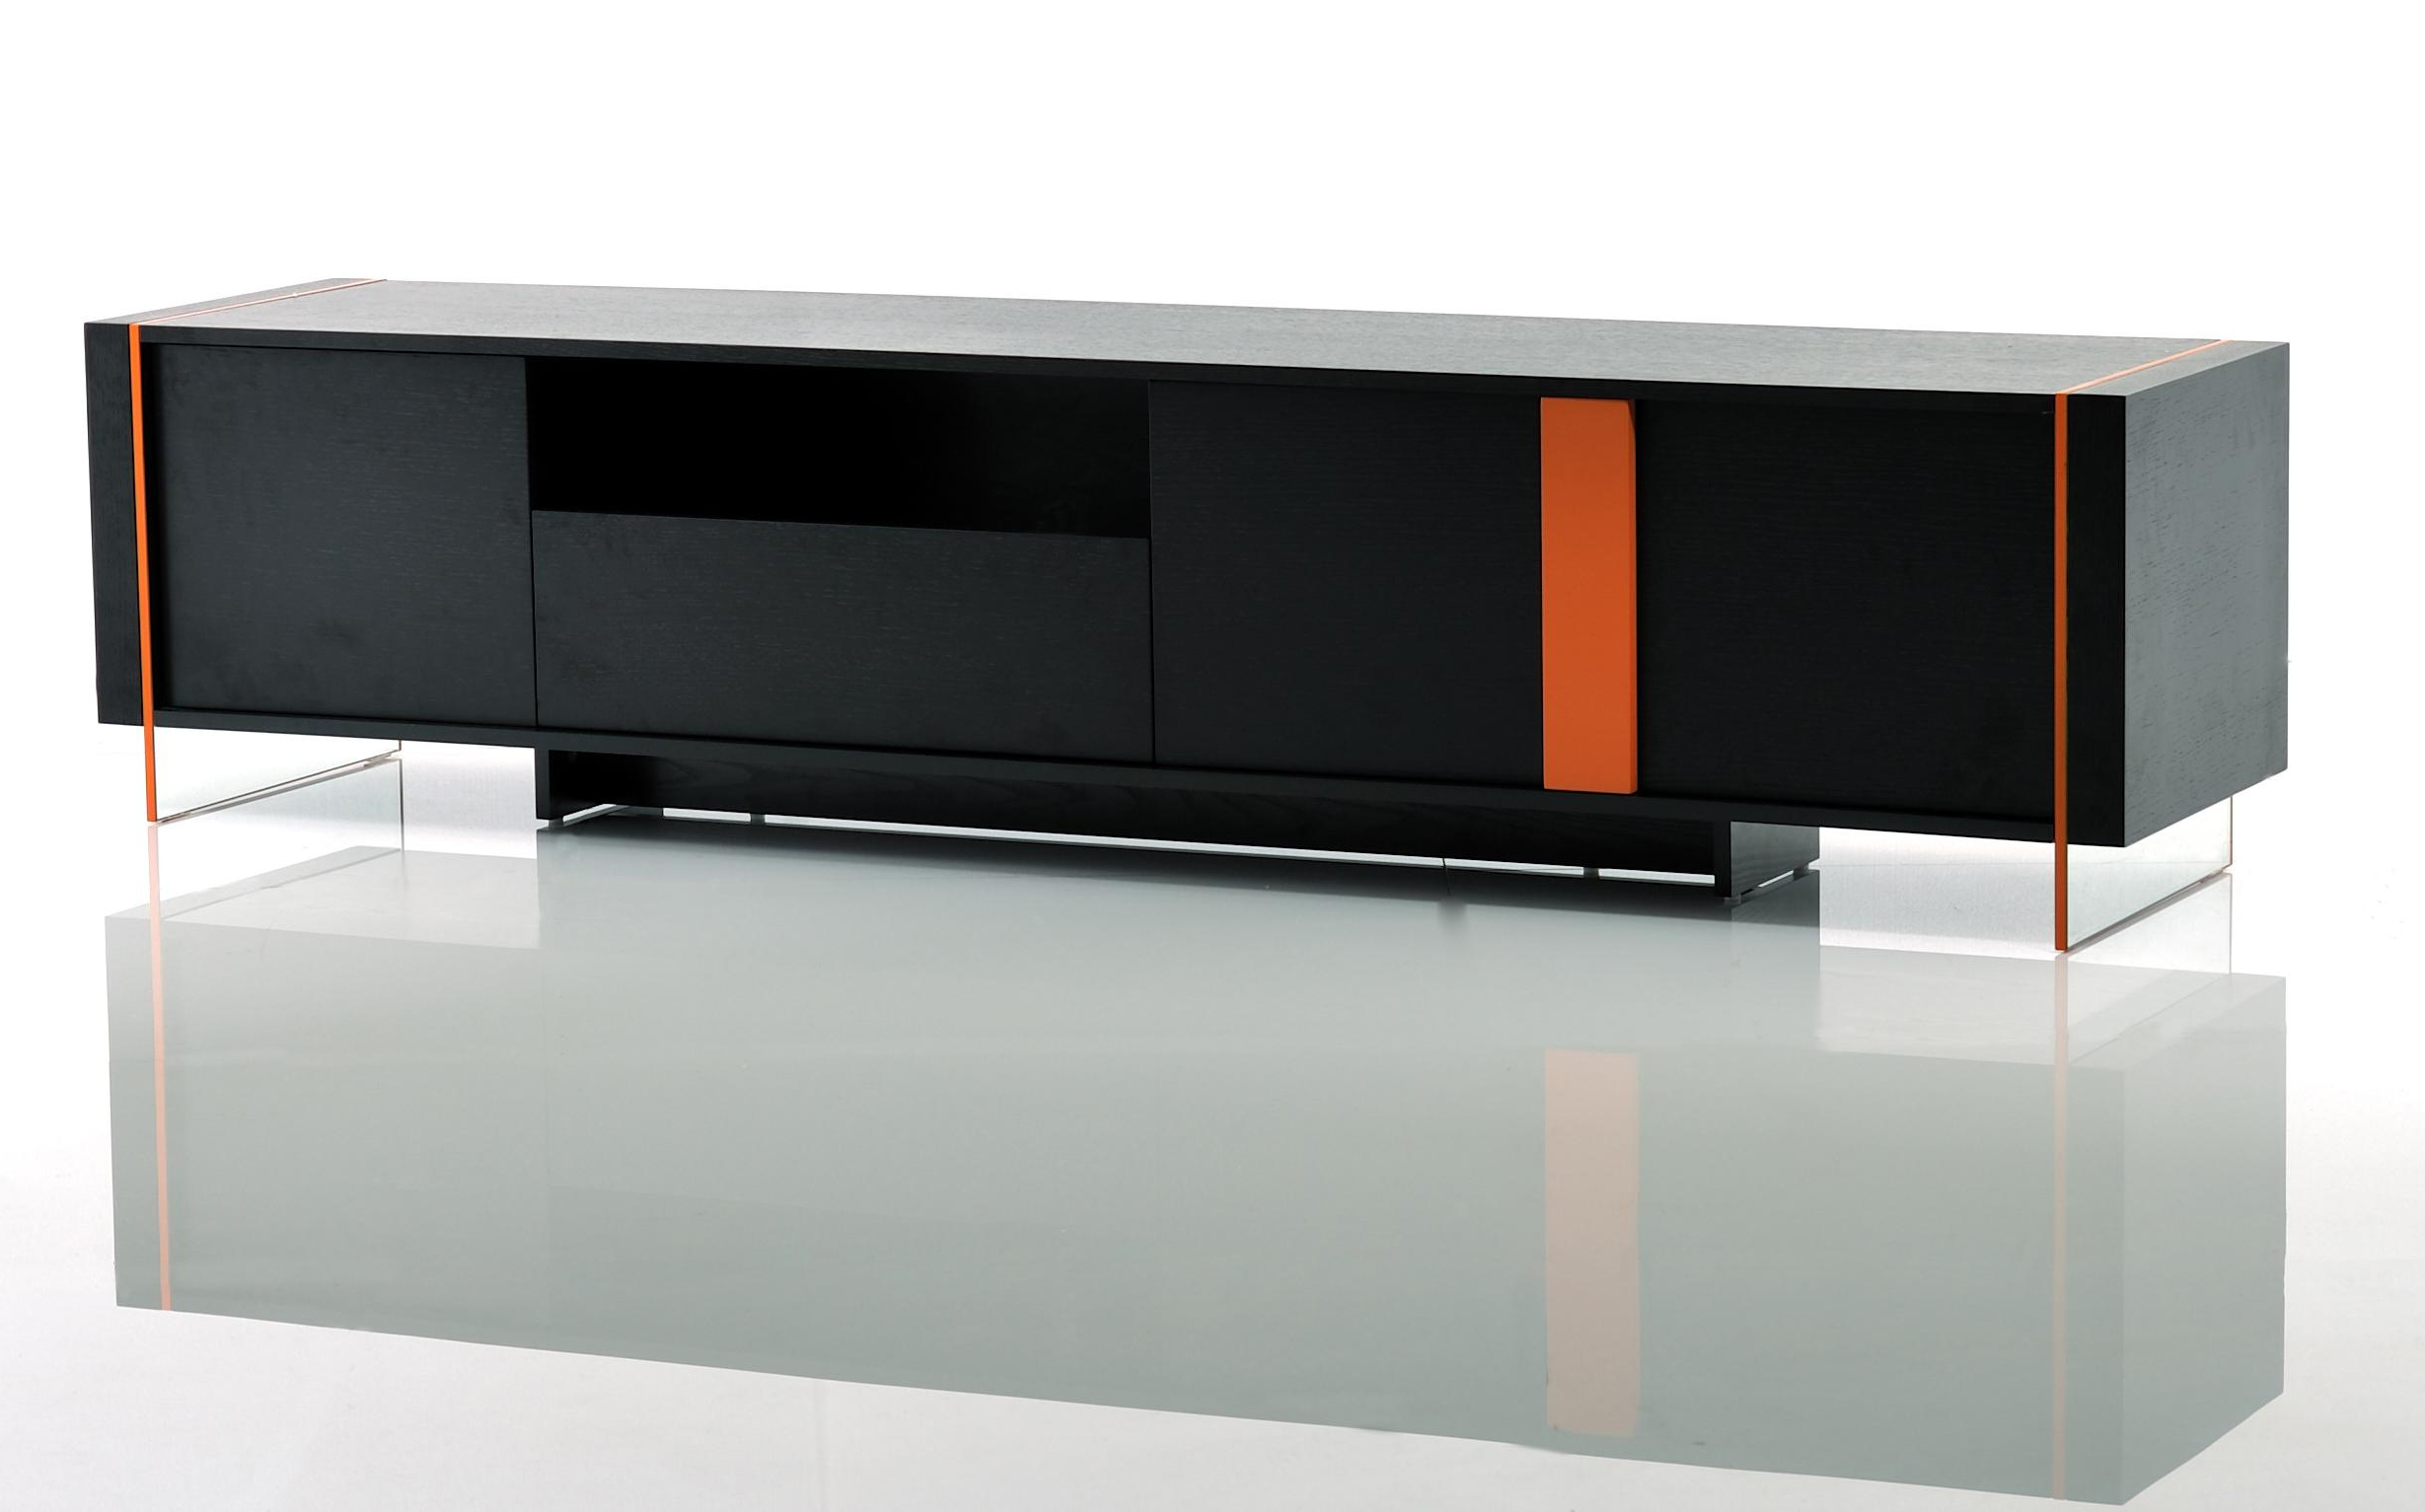 Popular Contemporary Black Oak And Orange Floating Tv Stand Austin Texas Vvis Intended For Oak Effect Corner Tv Stand (View 16 of 20)